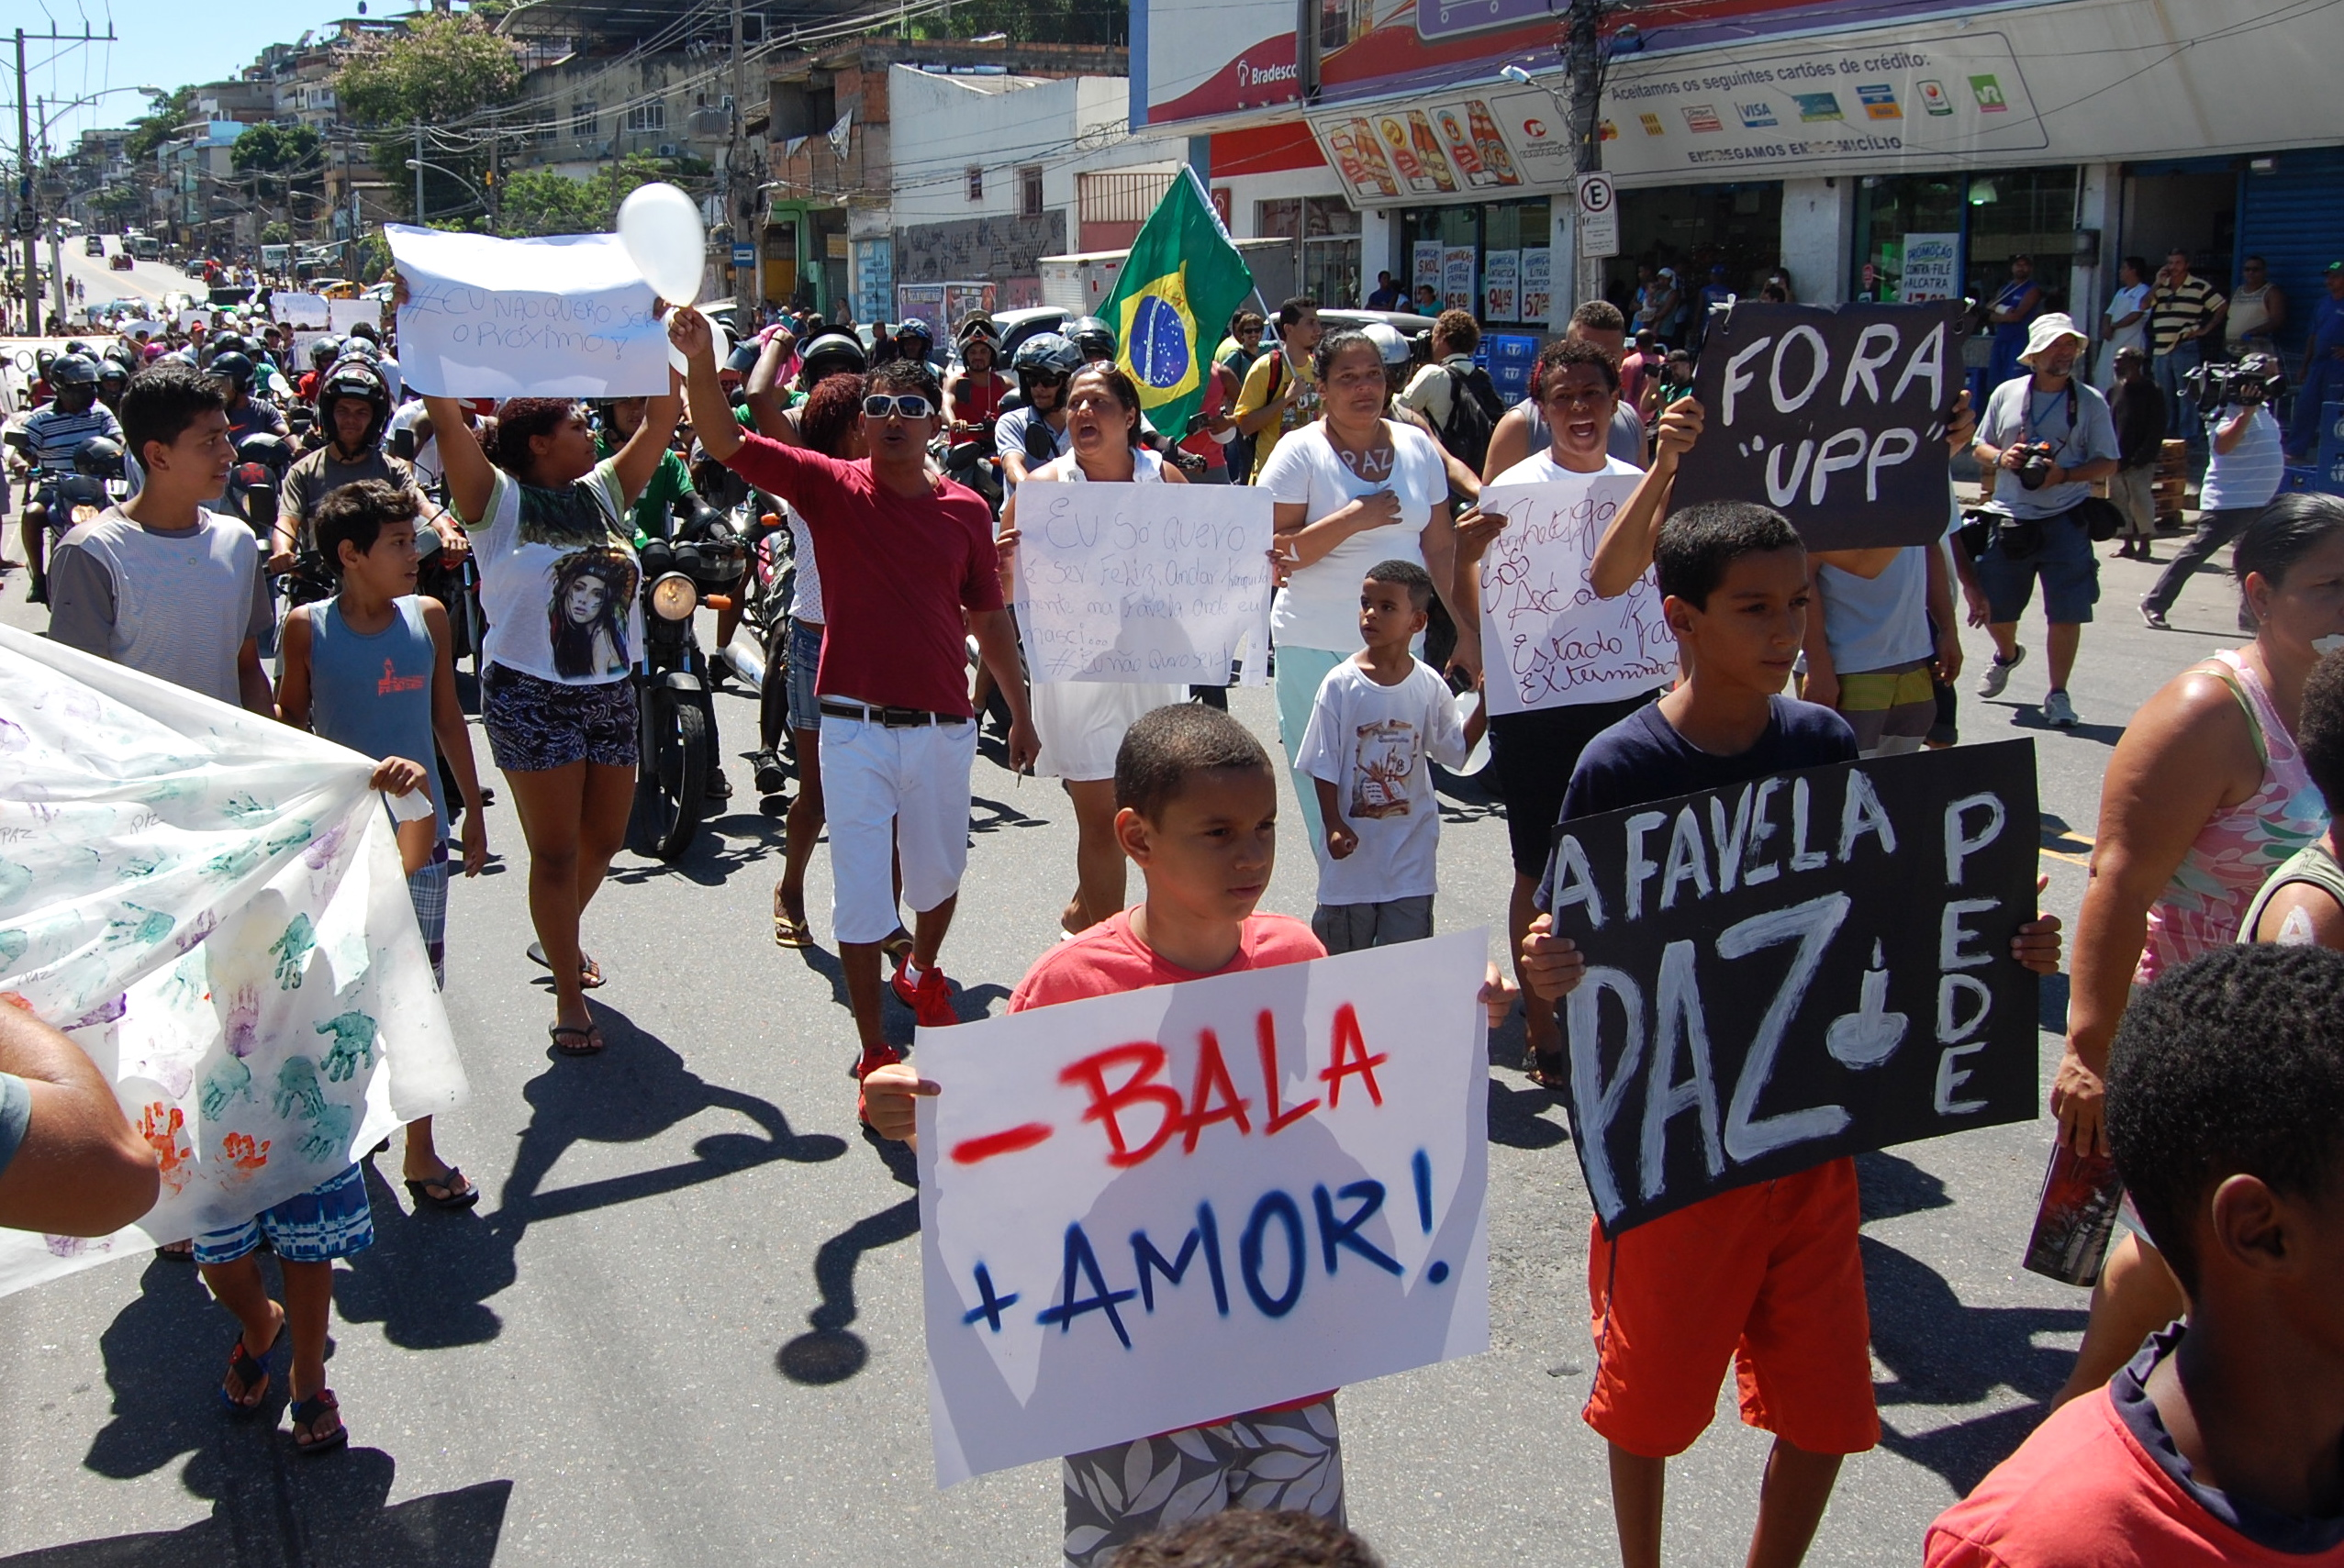 Favela residents march in a protest against the pacification police program in Rio de Janeiro.